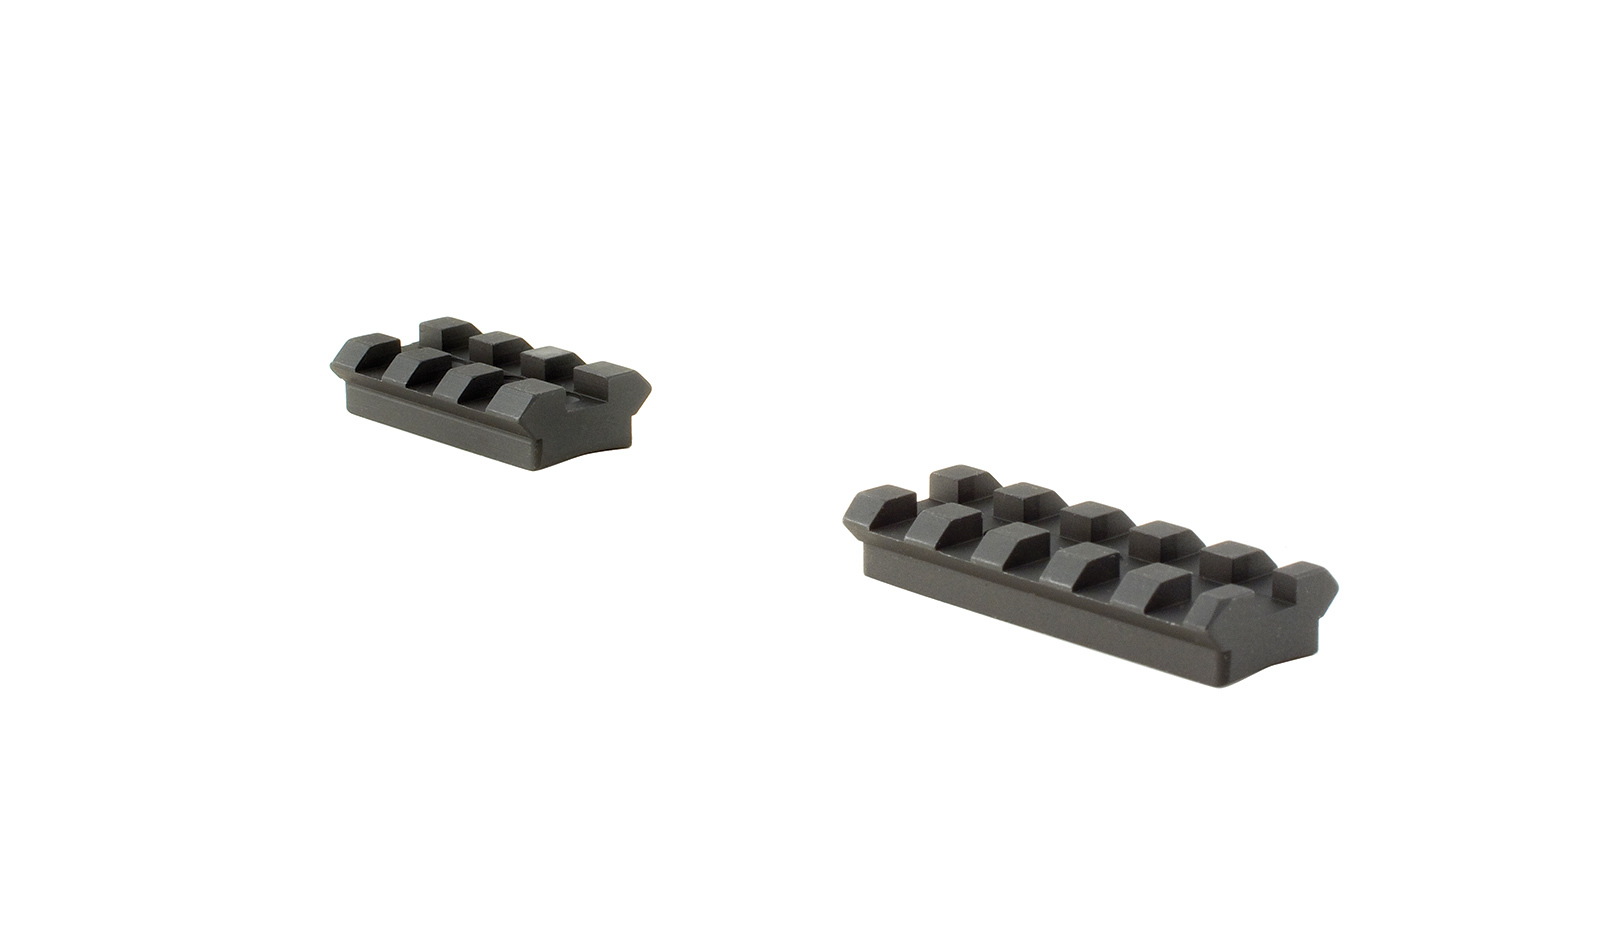 Two-Piece 1913 Picatinny Steel Rail for Browning® A-Bolt, Steyr® SBS and SAKO® A7